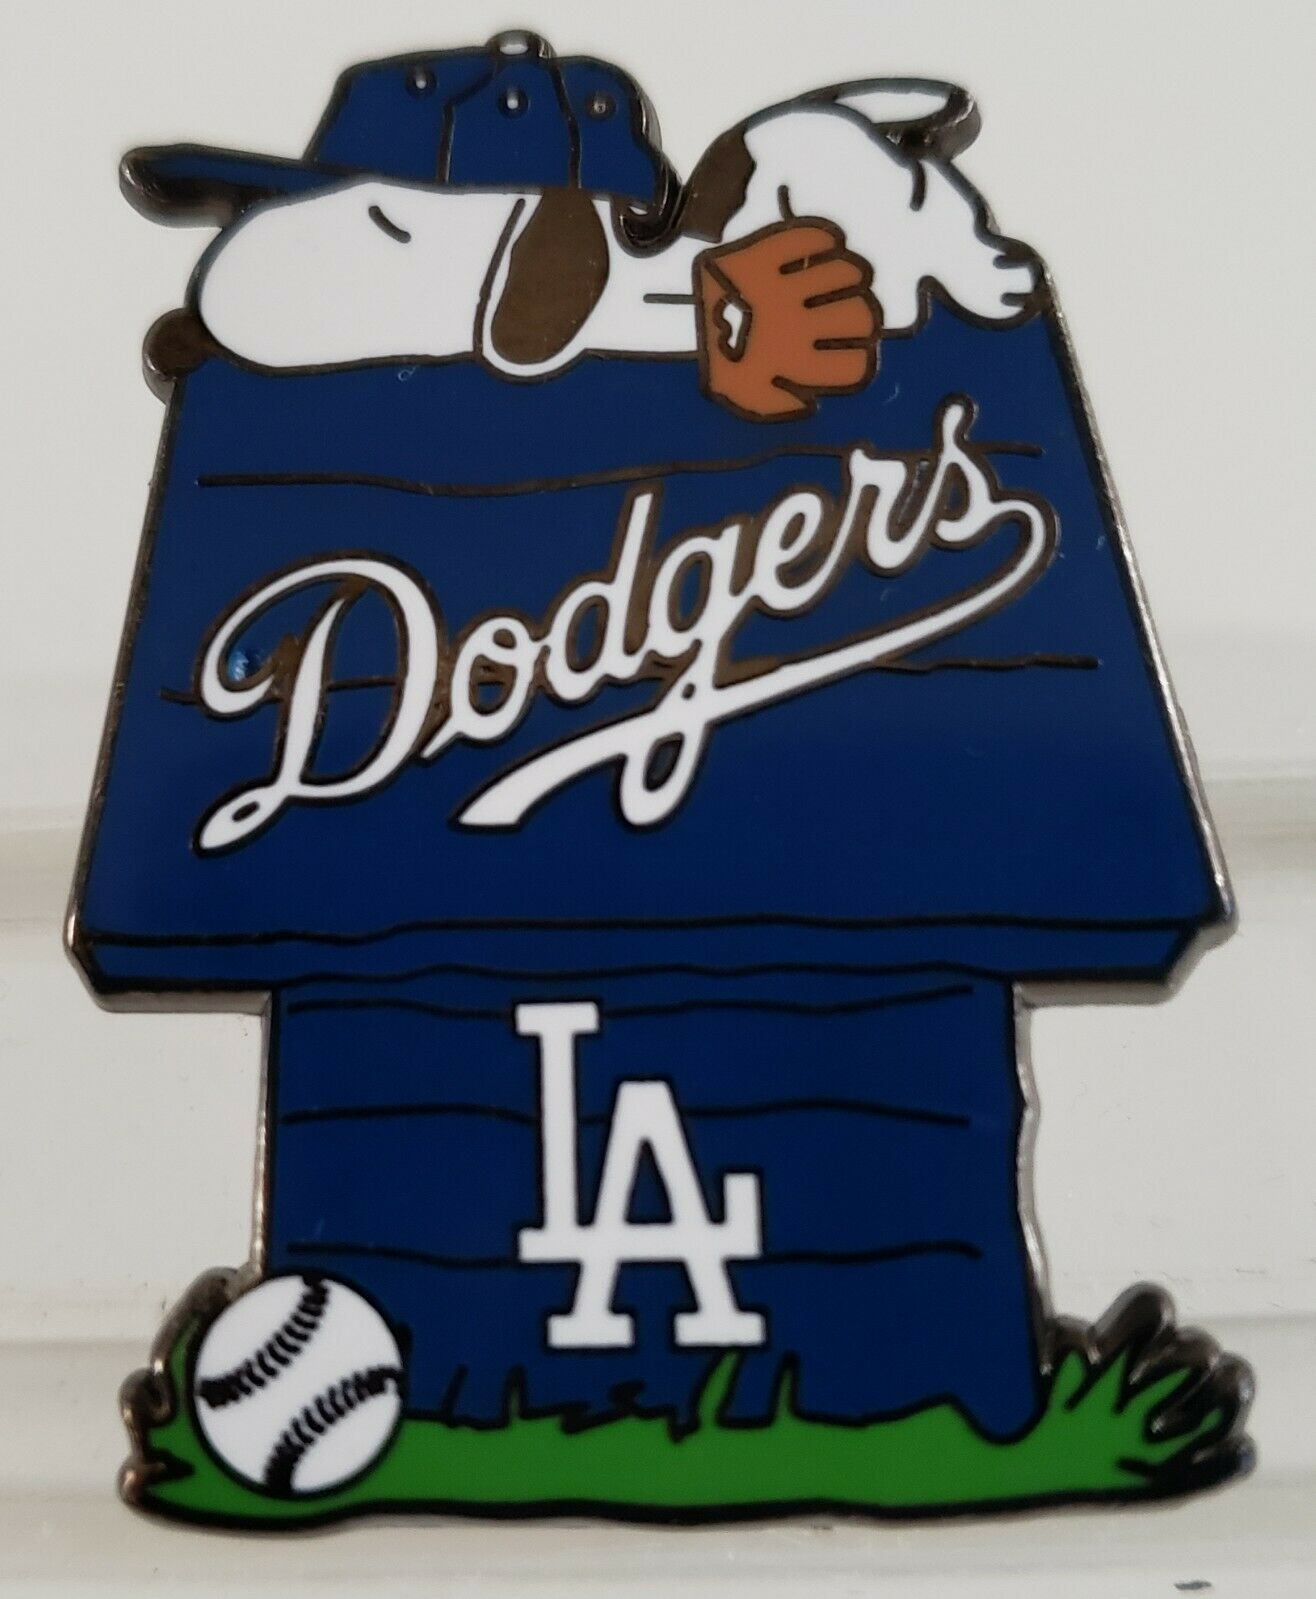 Los Angeles Dodgers Snoopy Doghouse Pin Great Gift Idea Free Shipping 14 90 Picclick Dodgers Dodgers Girl Snoopy